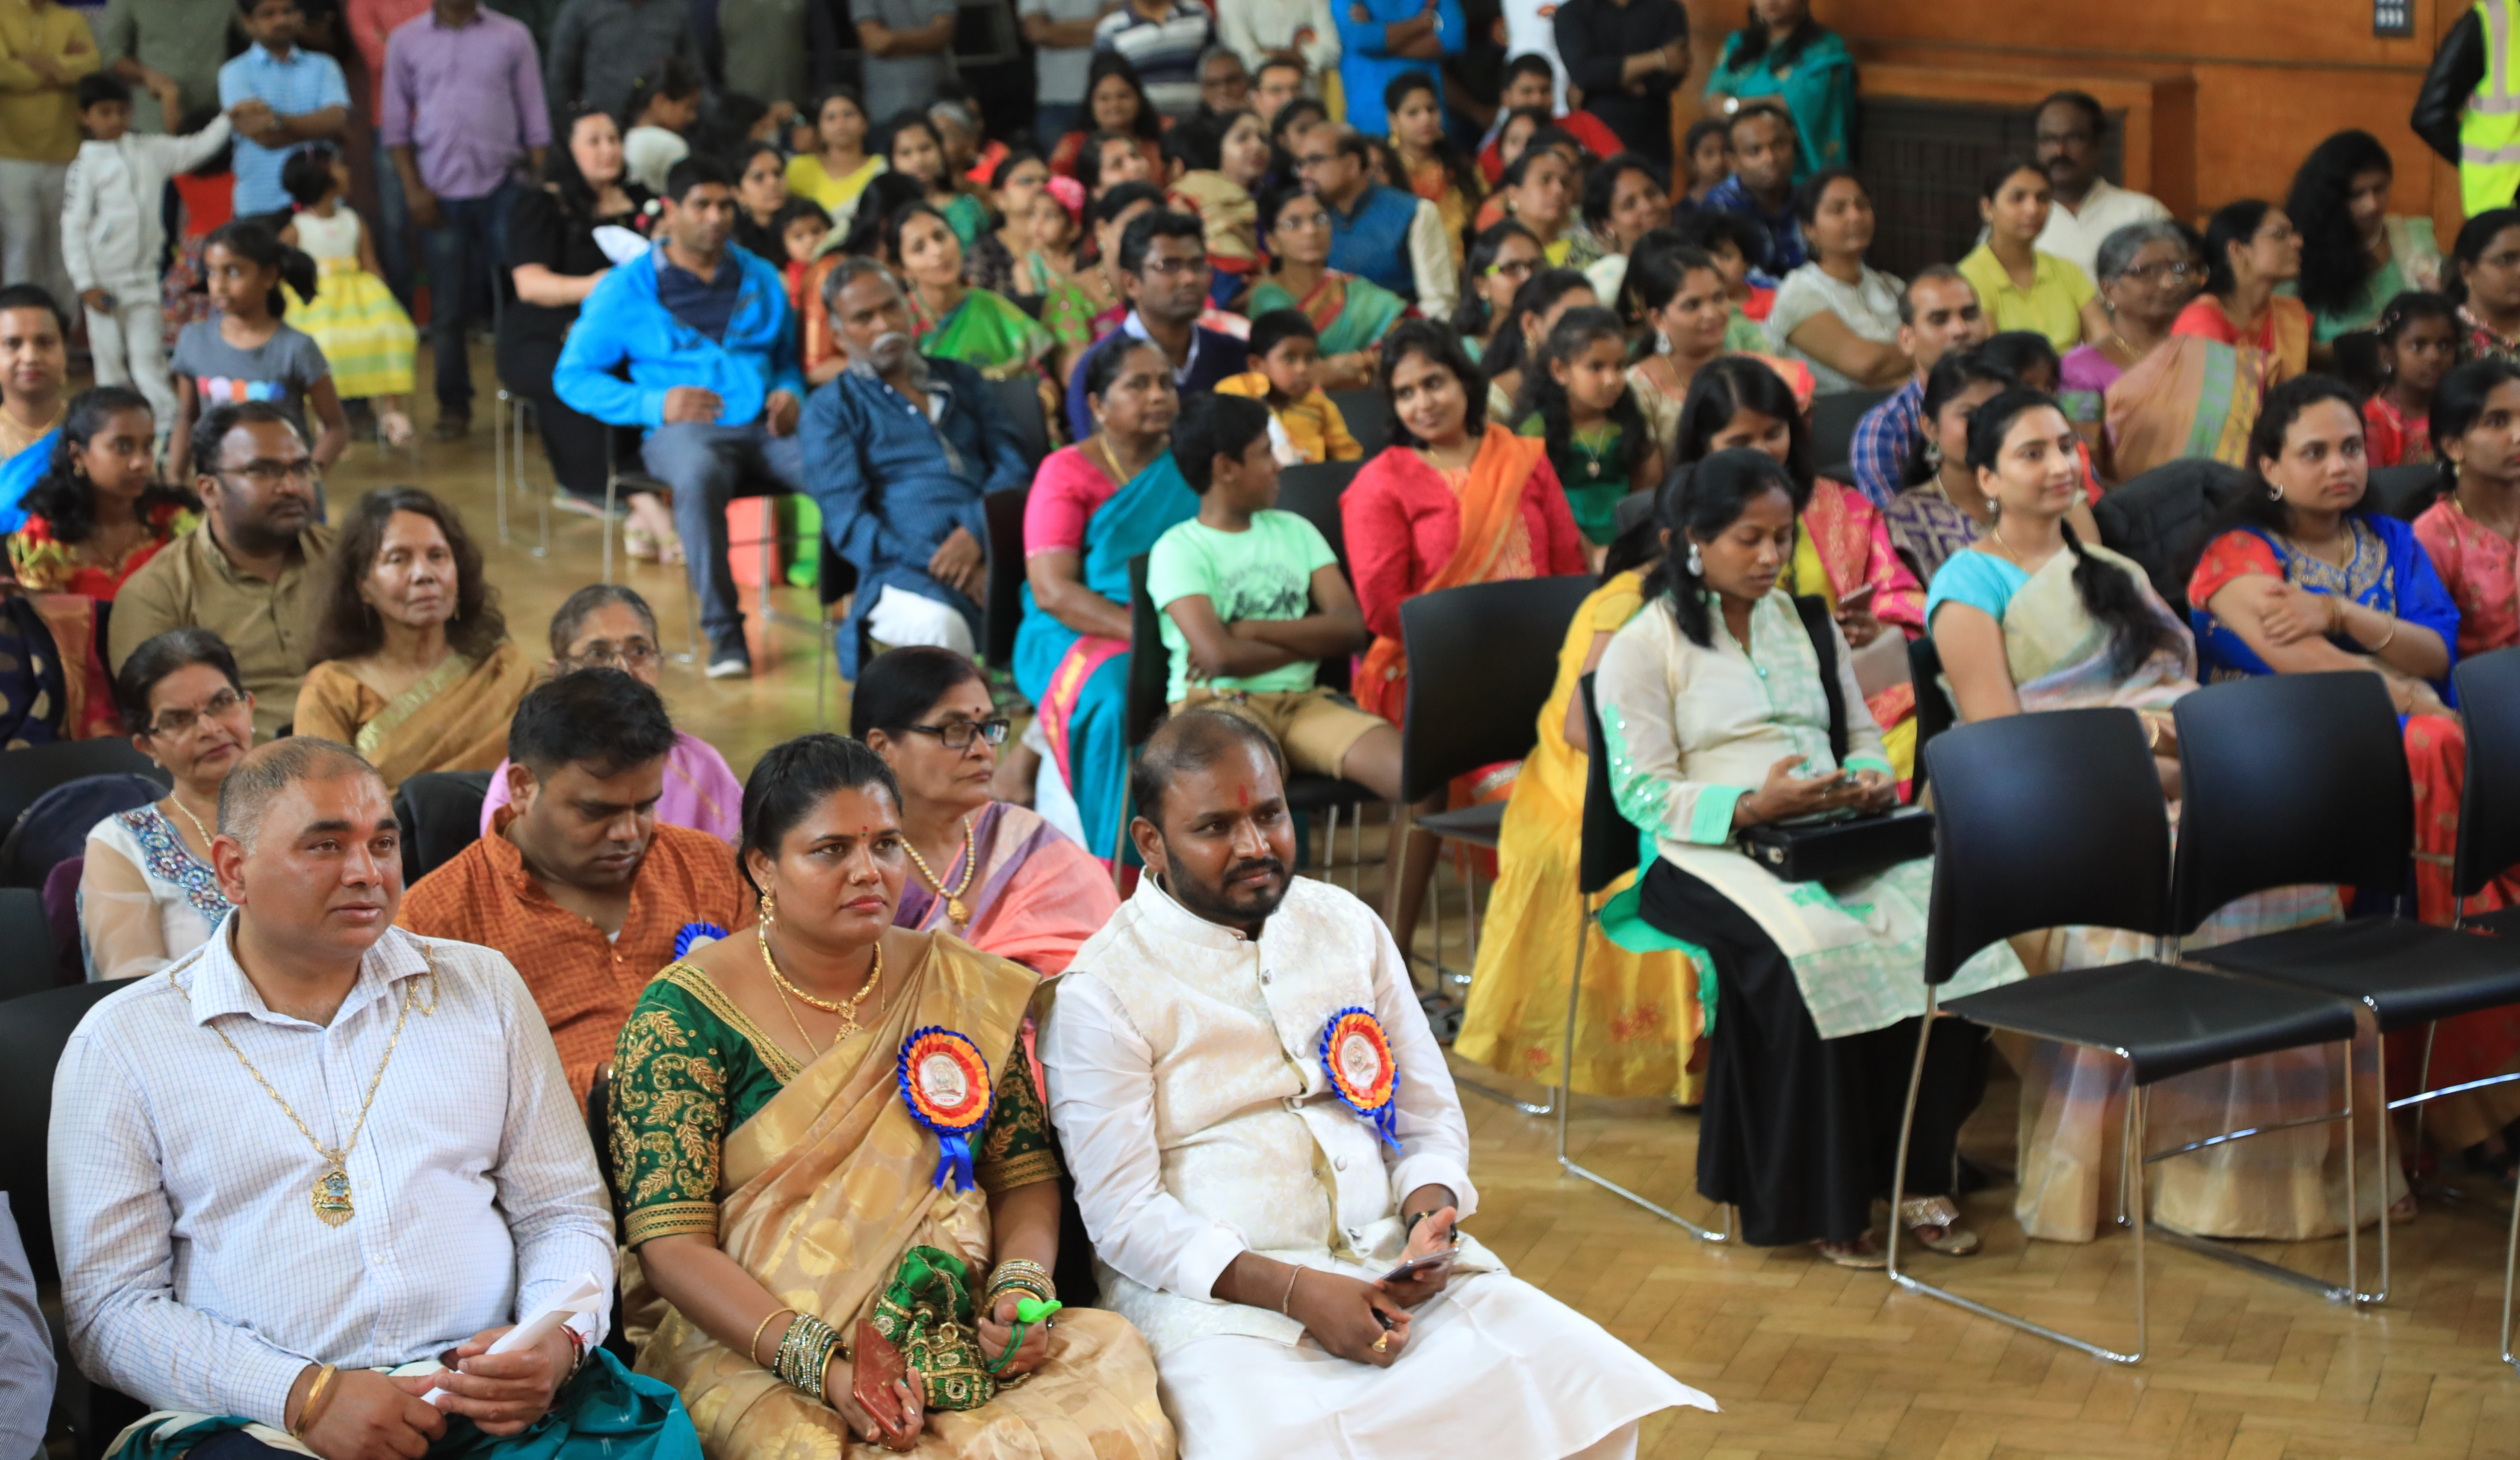 Over 800 NRIs gathered in London to celebrate the Hindu festival of Bonalu